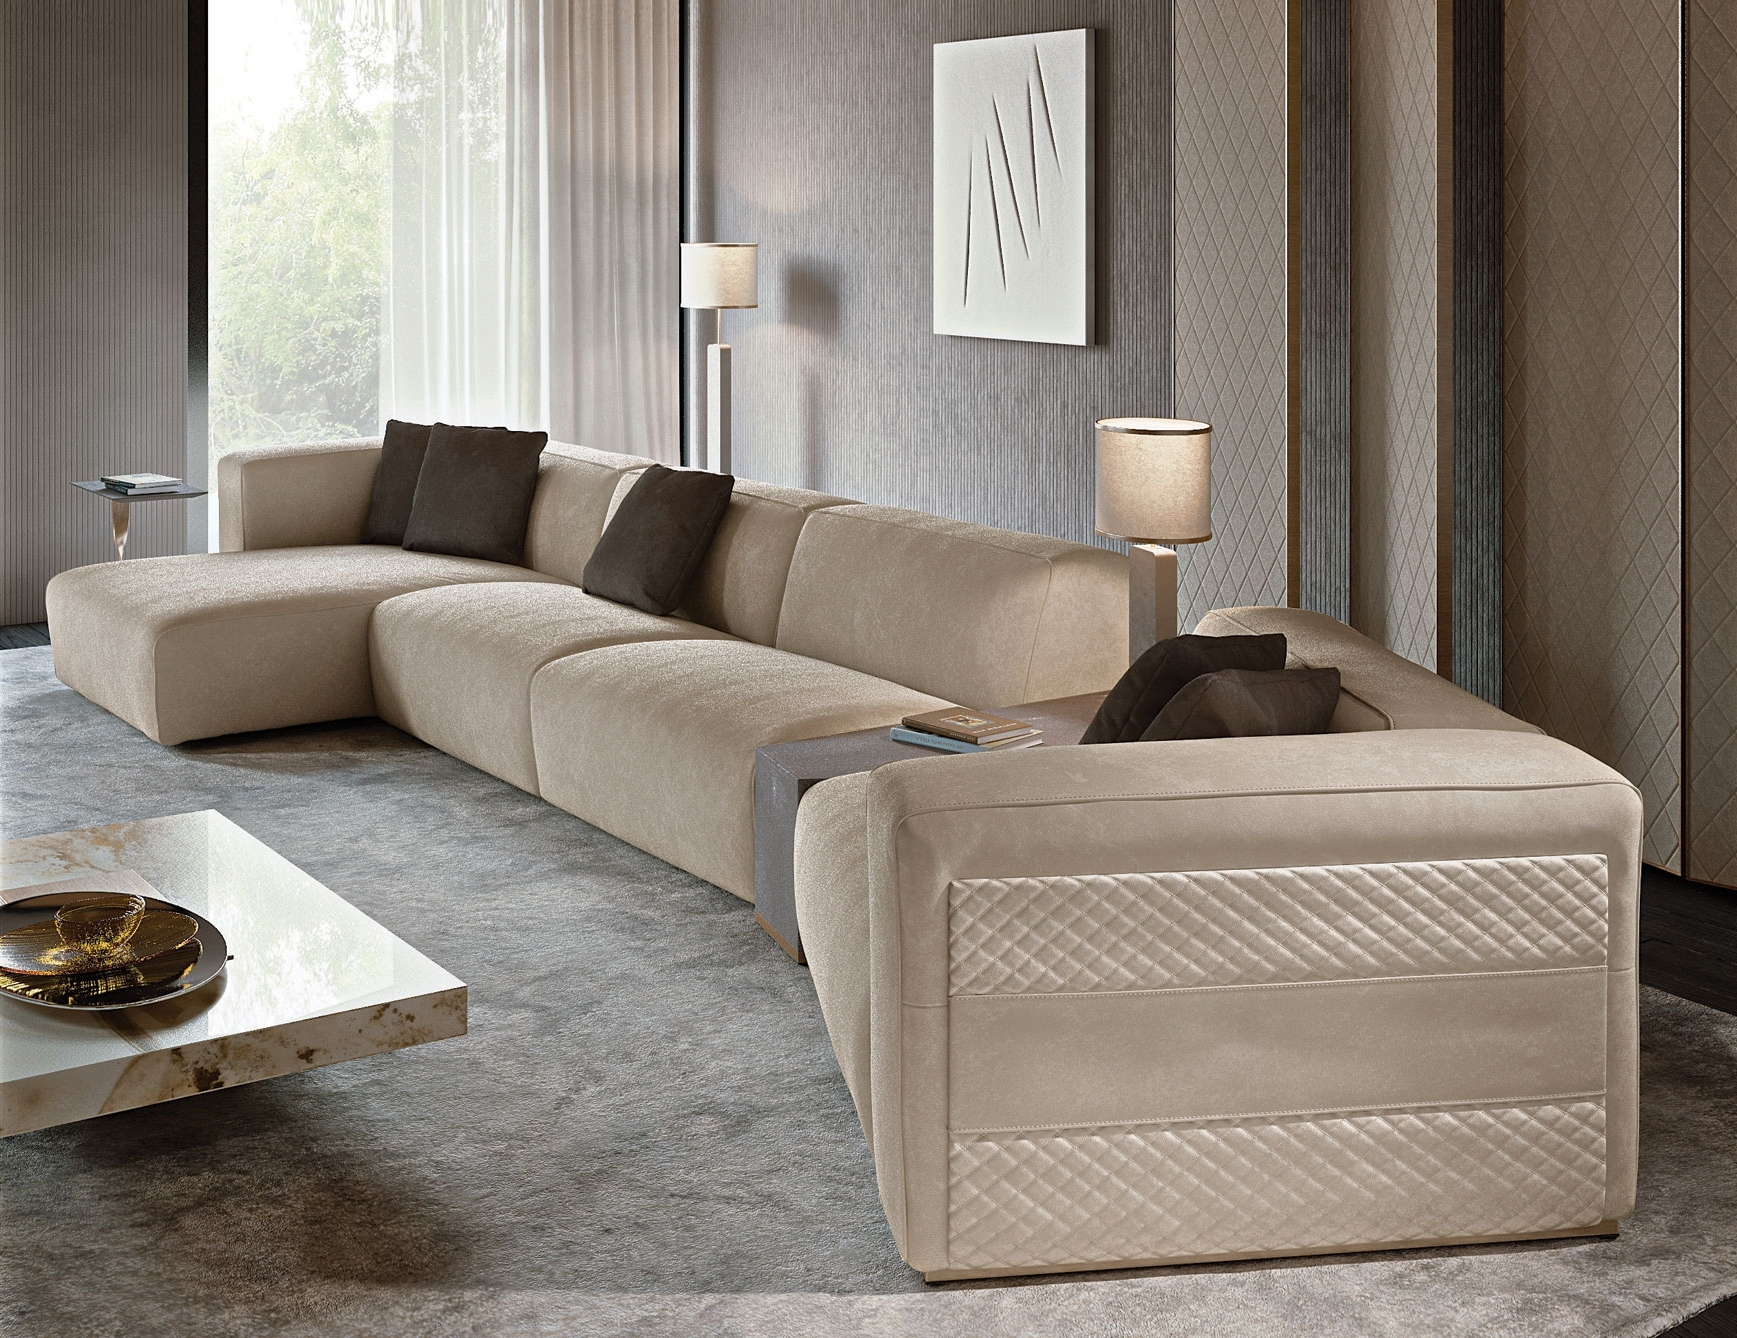 Most Recently Released Sofas And Chairs In Nella Vetrina Rugiano Freud Sectional Sofa In Suede (View 2 of 15)